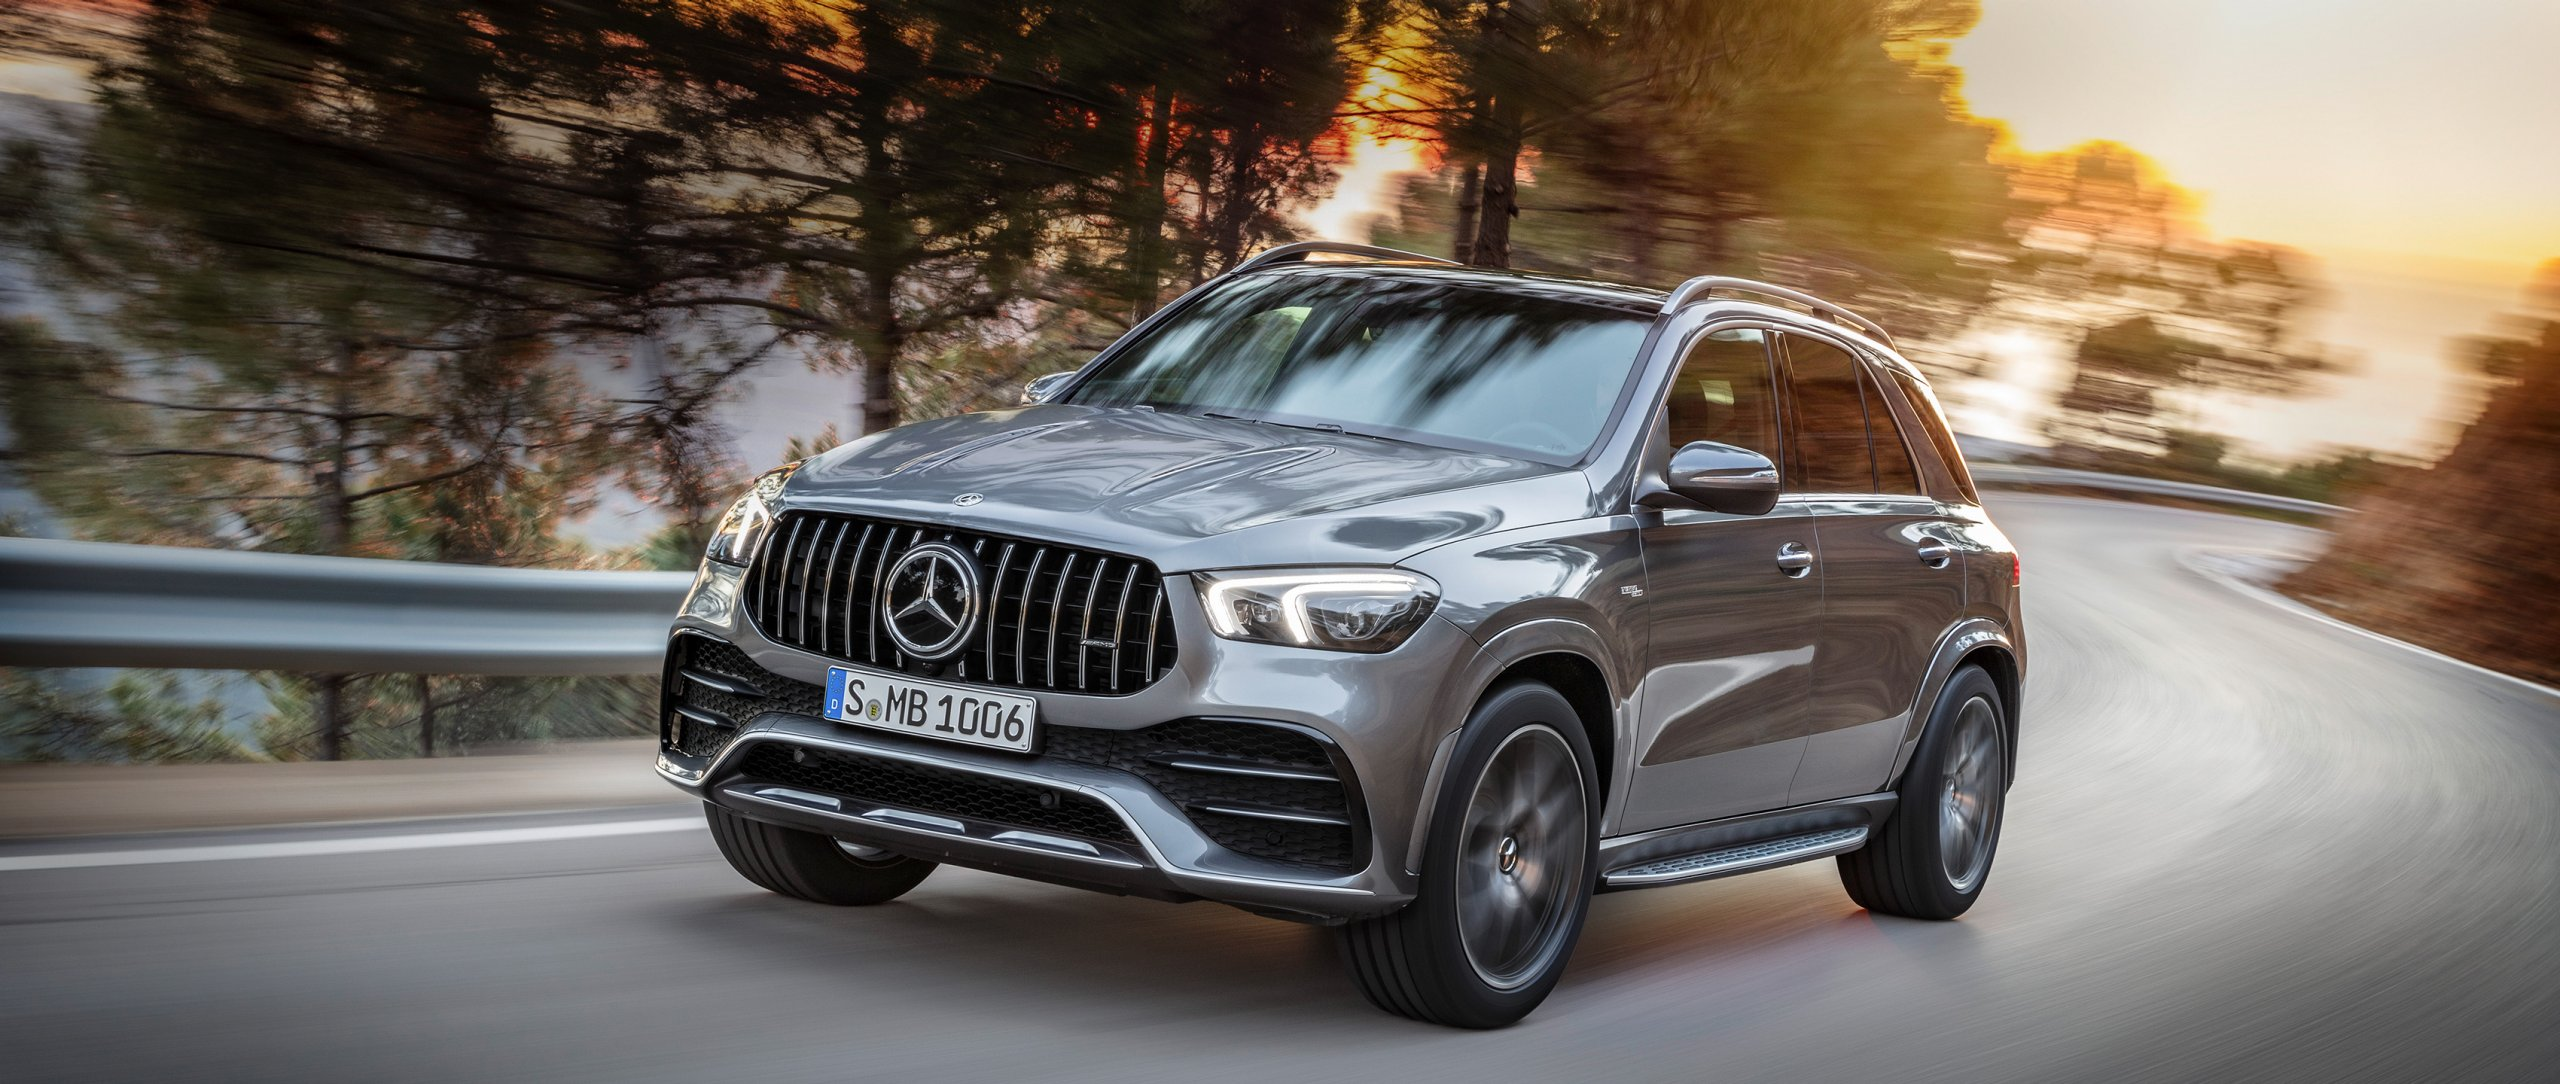 The 2019 Mercedes-AMG GLE 53 4MATIC+ (V 167) in selenite grey metallic on the road.